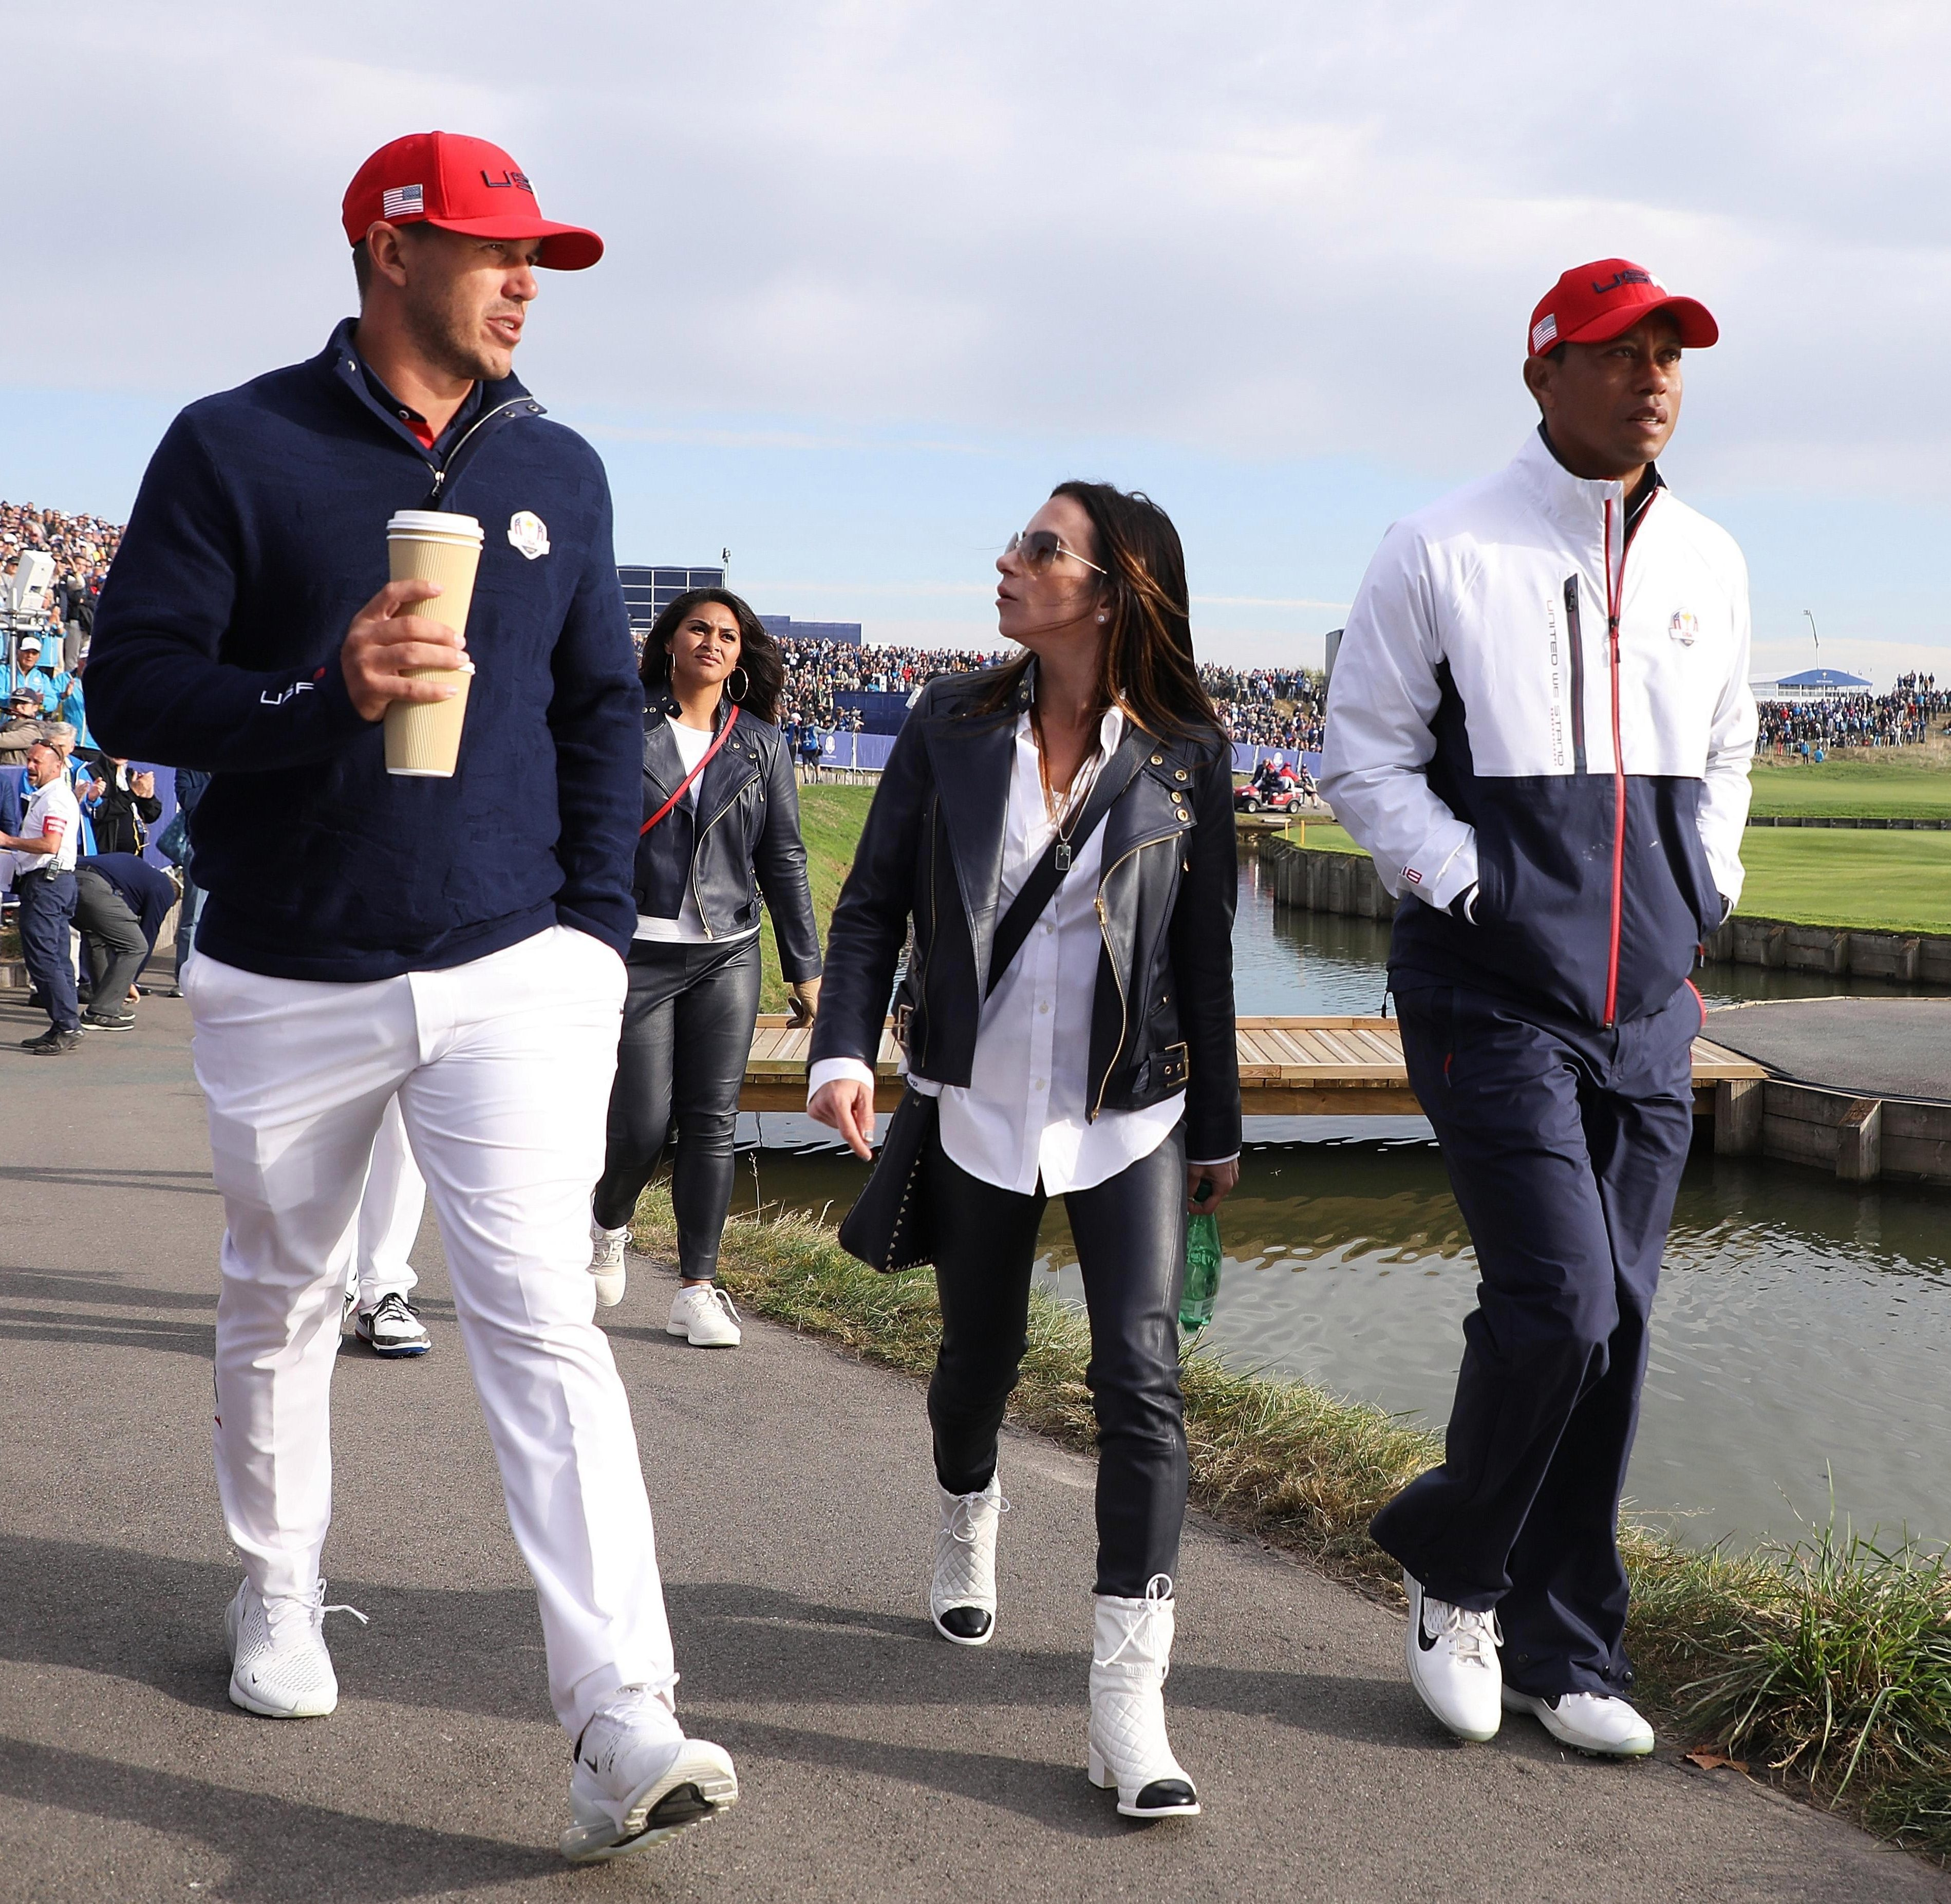 Tiger Woods and girlfriend Erica Herman trudged away from the course after defeat